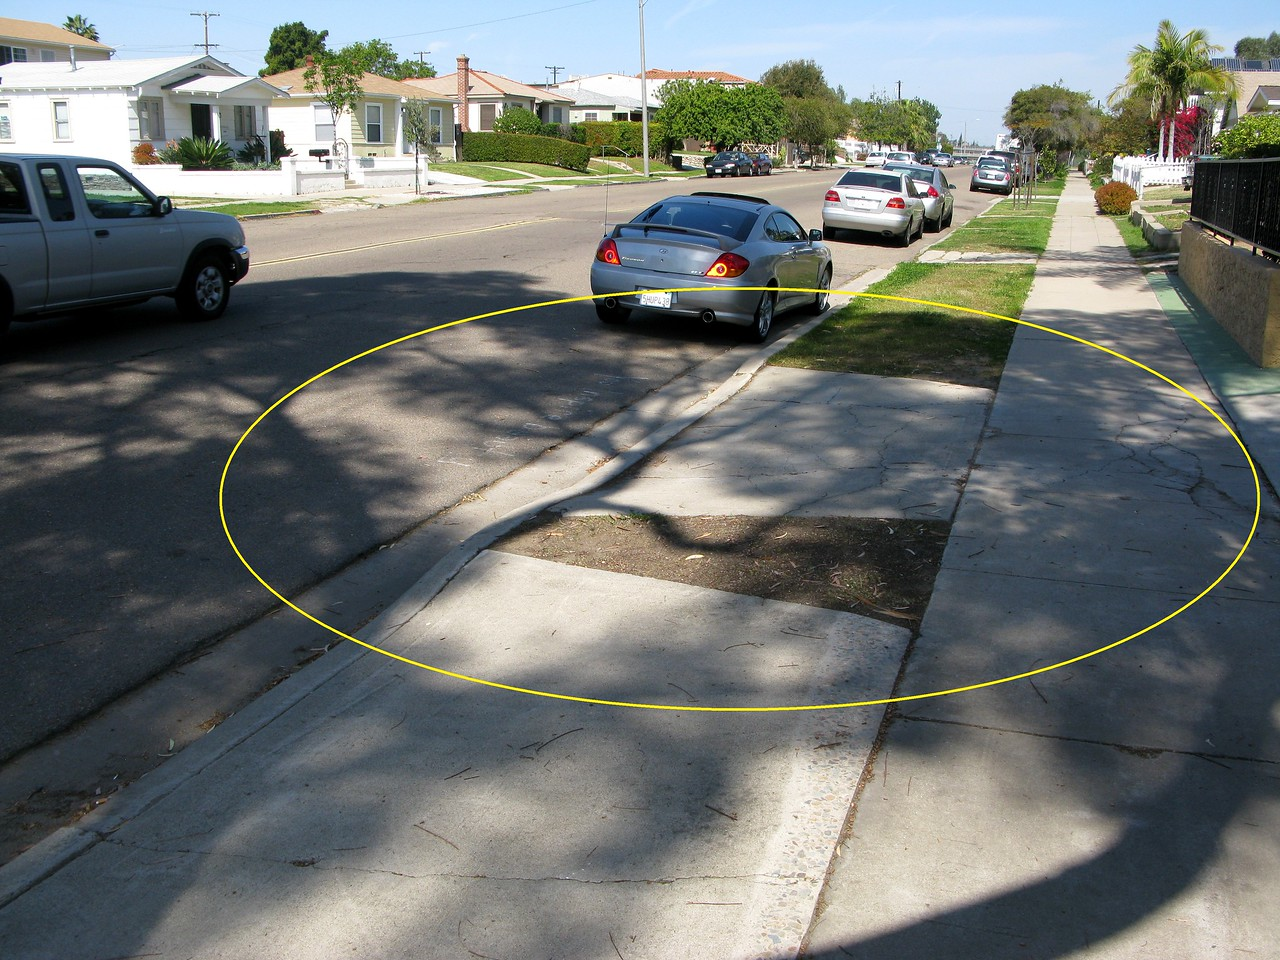 The initial impact point of Flight 182 occurred on this section of sidewalk, driveway, and Nile Street circled in yellow.<br /> <br /> The residence to the right of this photo was unscathed, but everything left of this photo was decimated with wreckage and burning jet fuel that radiated for several hundred feet.